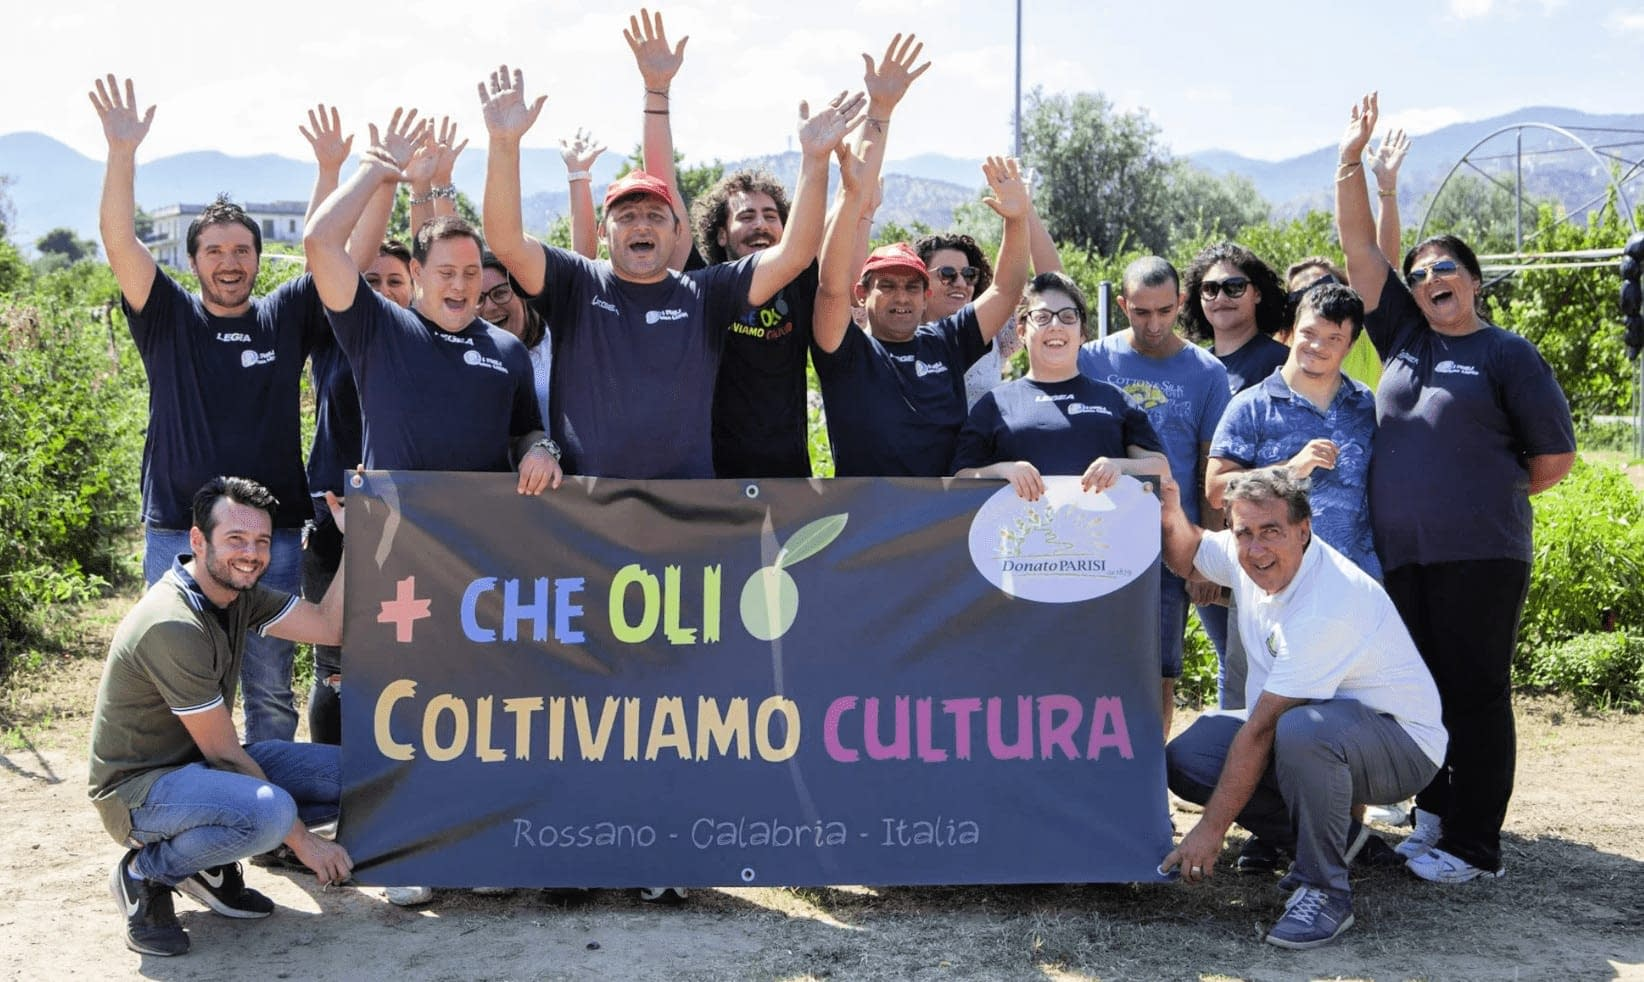 europe-competitions-the-best-olive-oils-world-strong-showing-by-calabrian-producers-at-world-competition-olive-oil-times